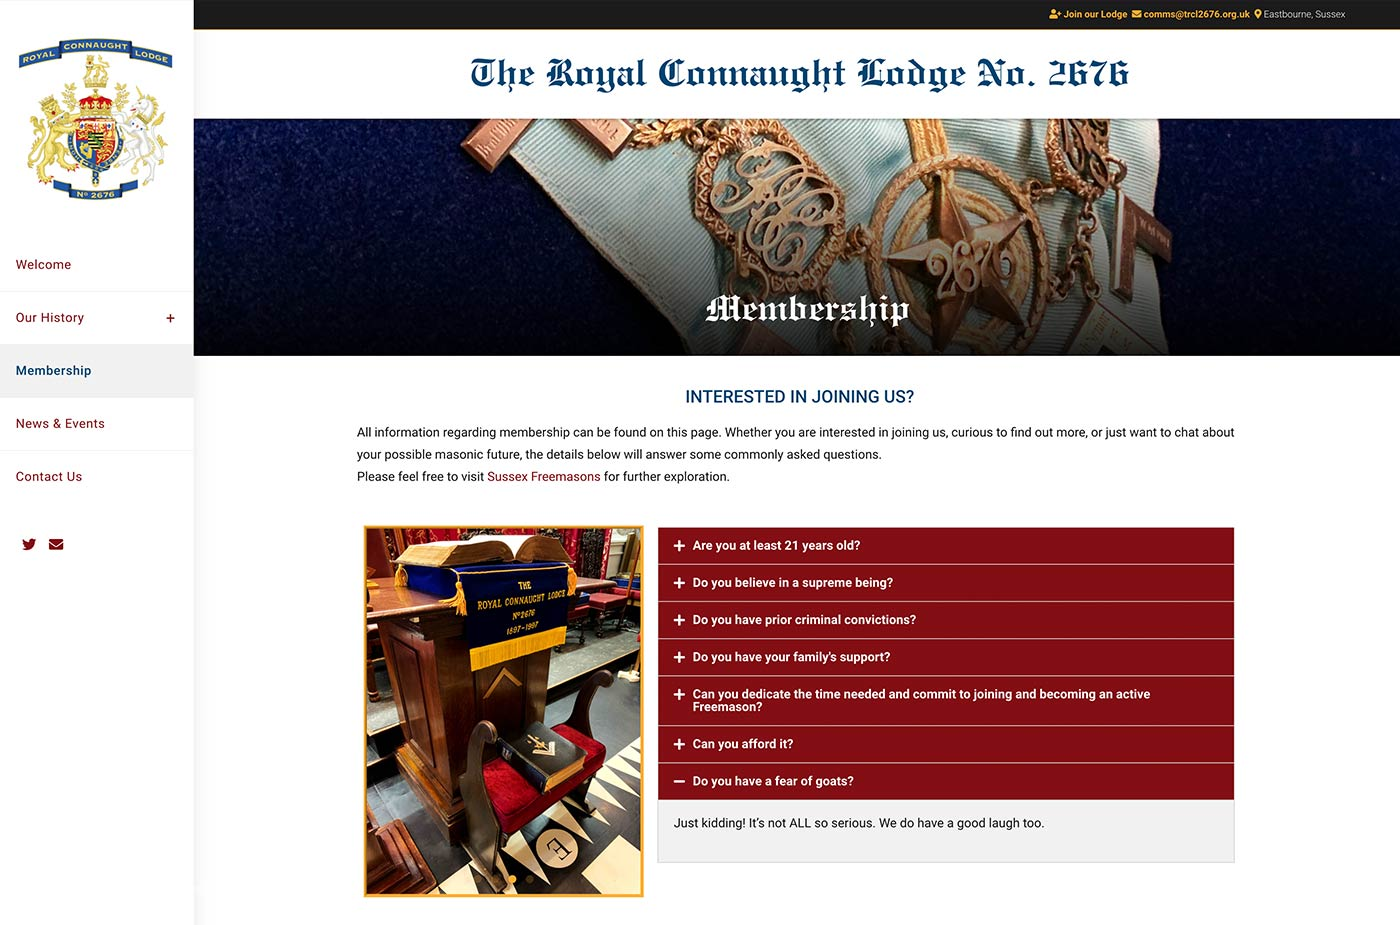 The Royal Connaught Lodge 2676 project work web page